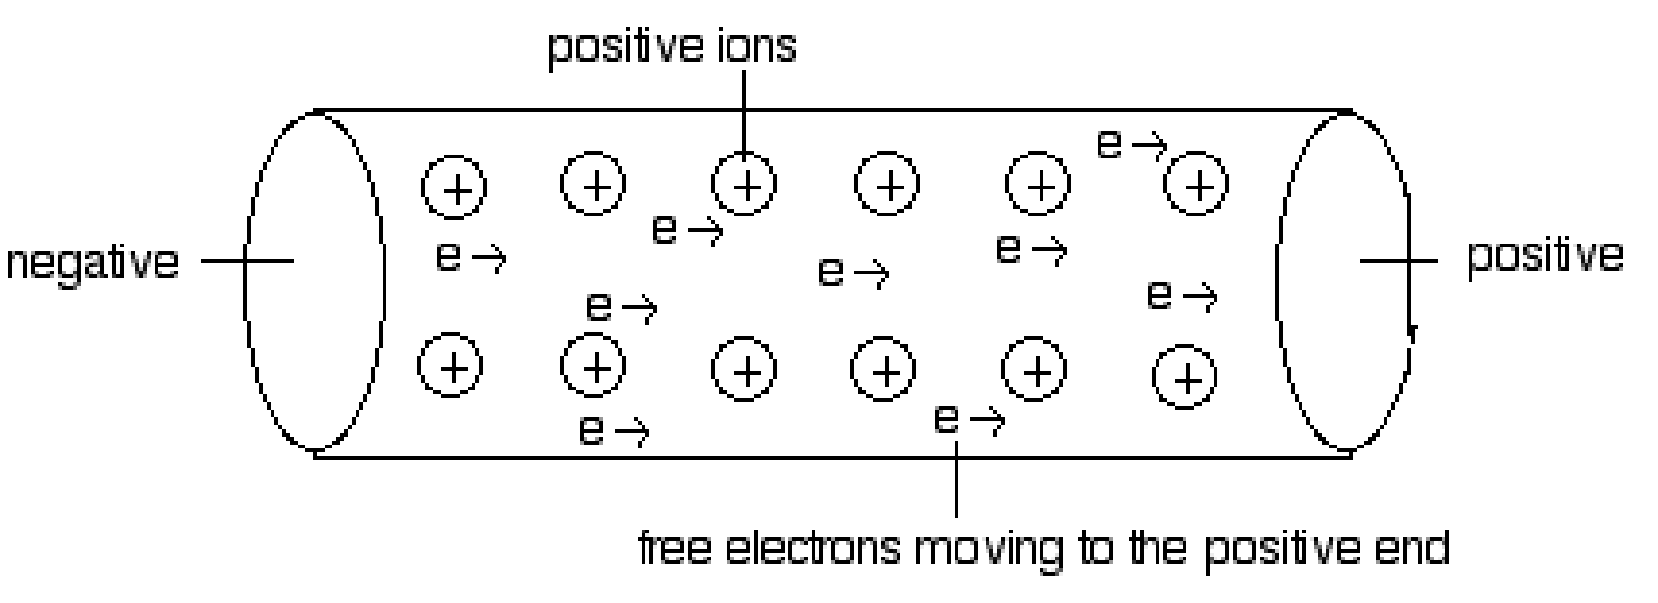 resistance in a wire coursework The resistance in a wire increases as: the length of the wire increases the  thickness of the wire decreases an electric current flows when electrons.